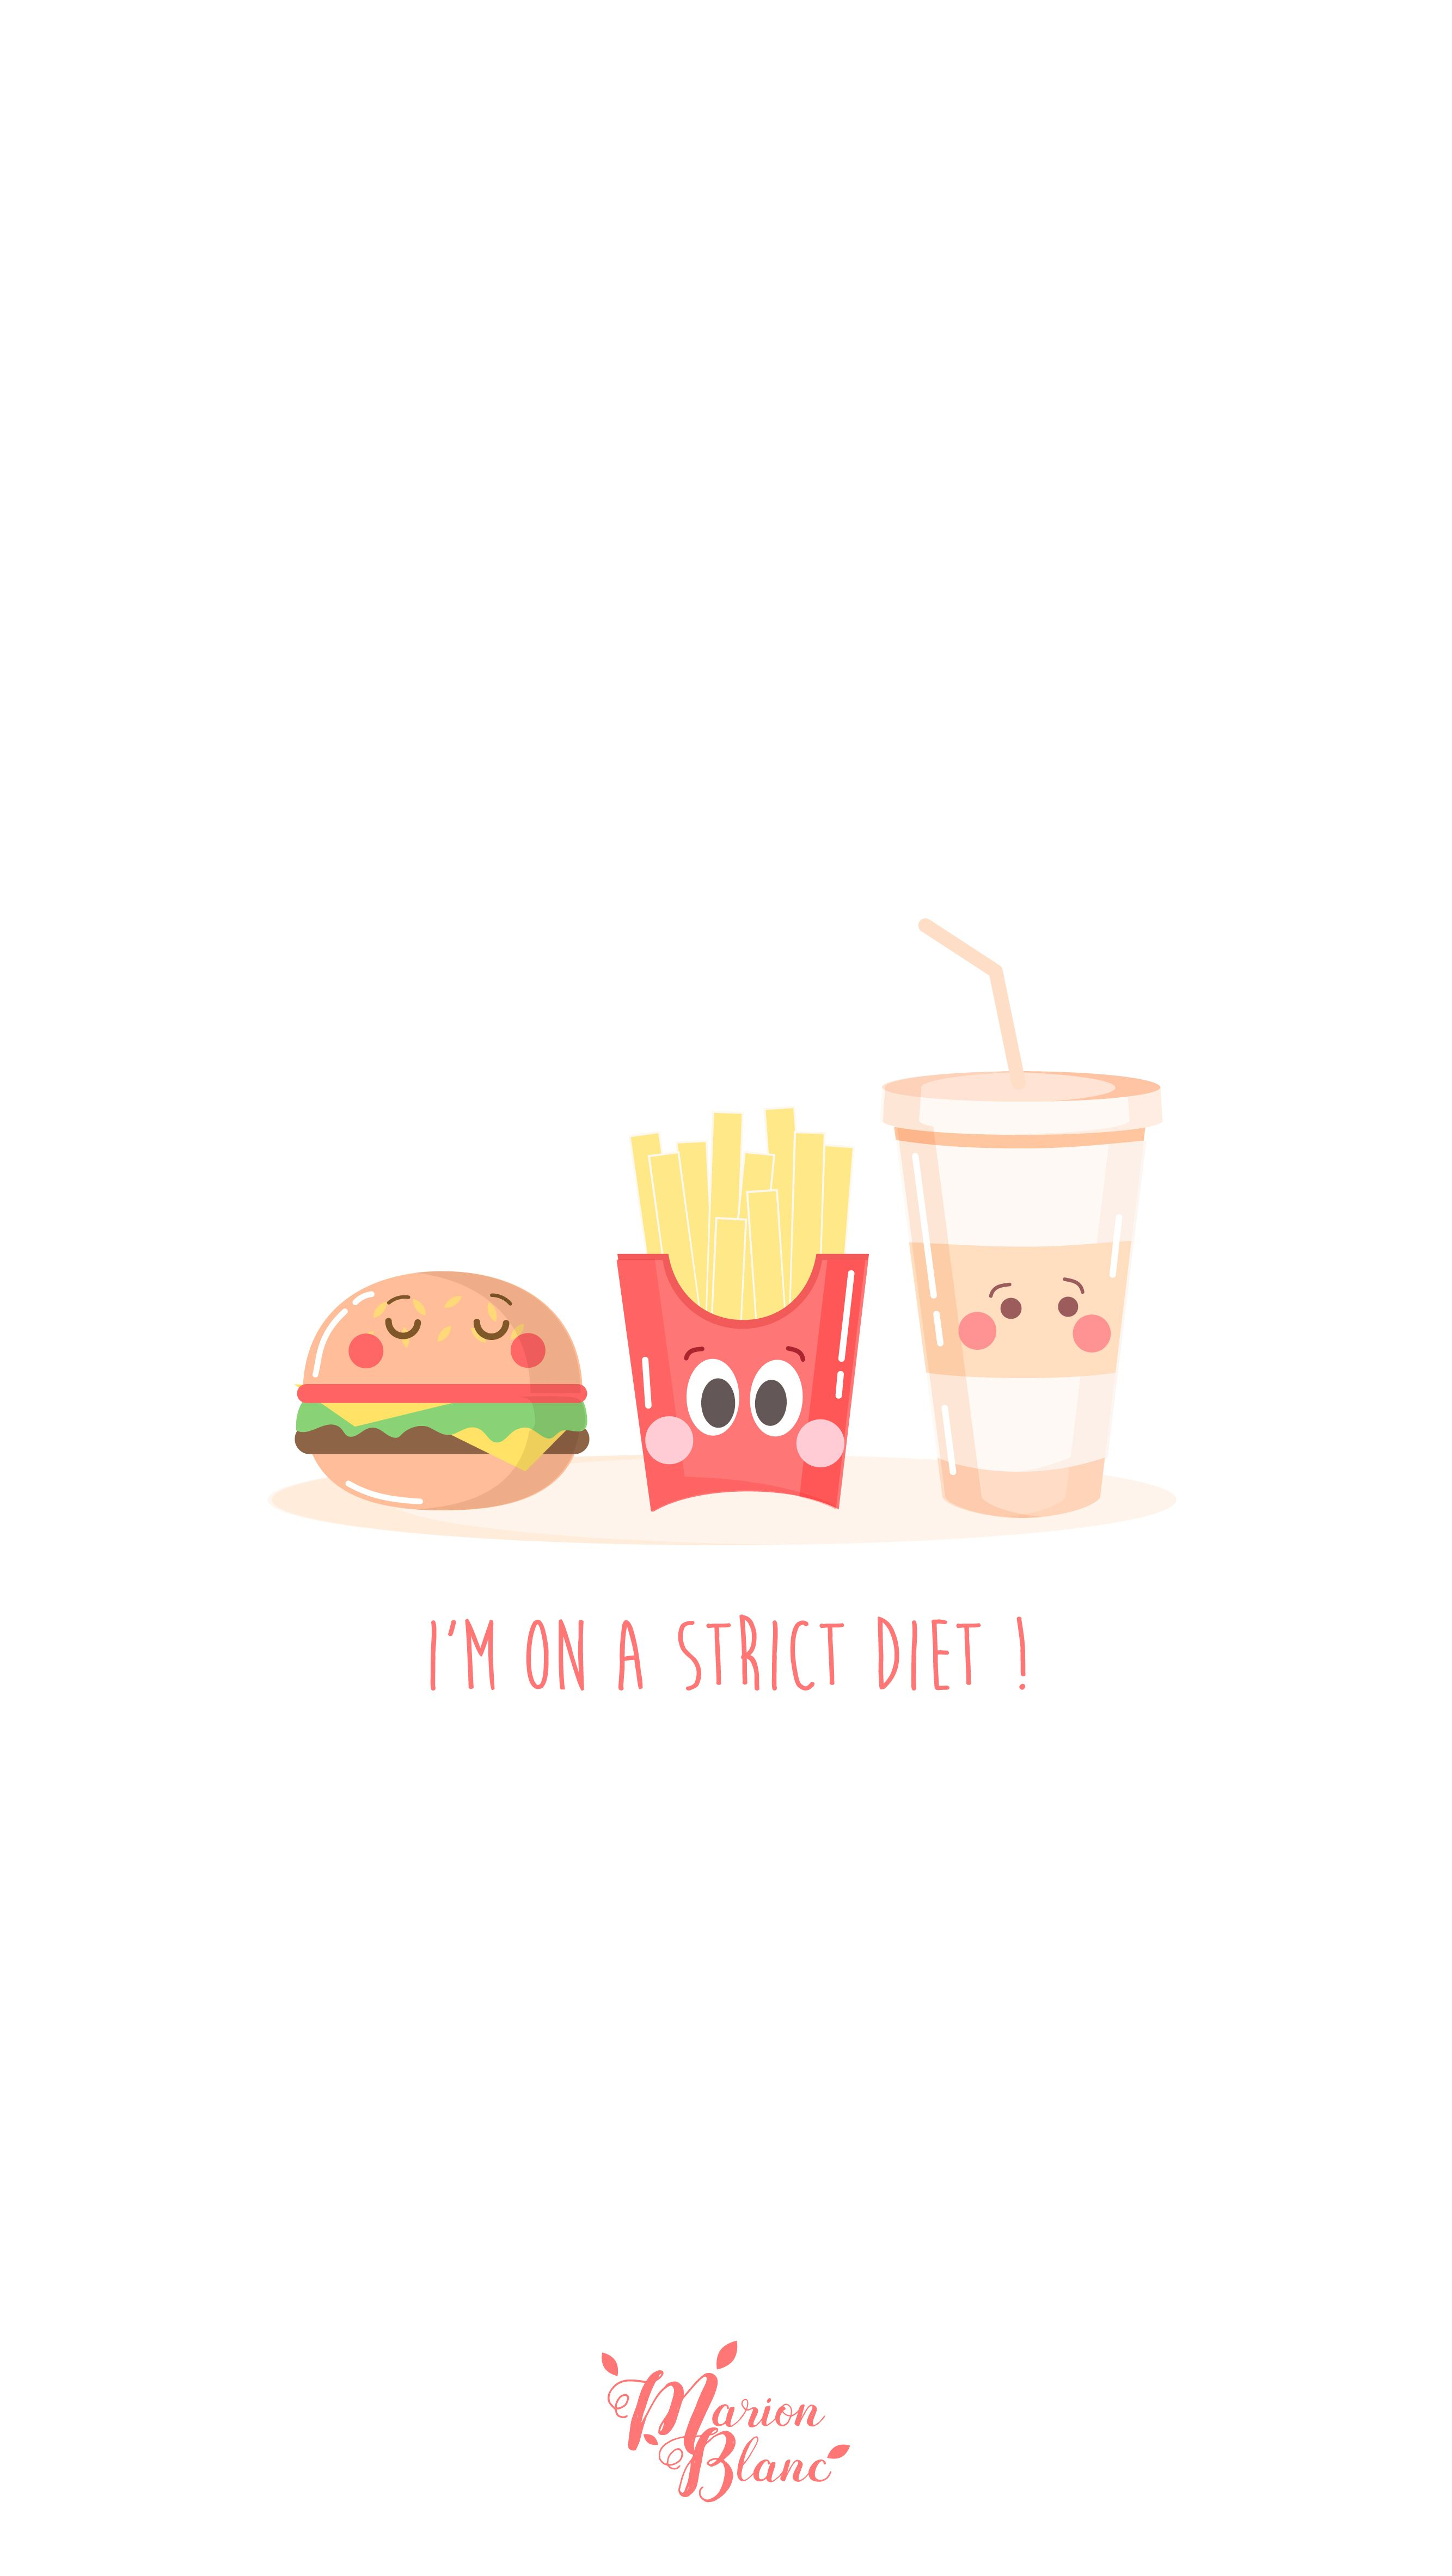 cute food iphone wallpapers top free cute food iphone backgrounds2667x4733 food marion blanc wallpapers pinterest wallpaper, food and